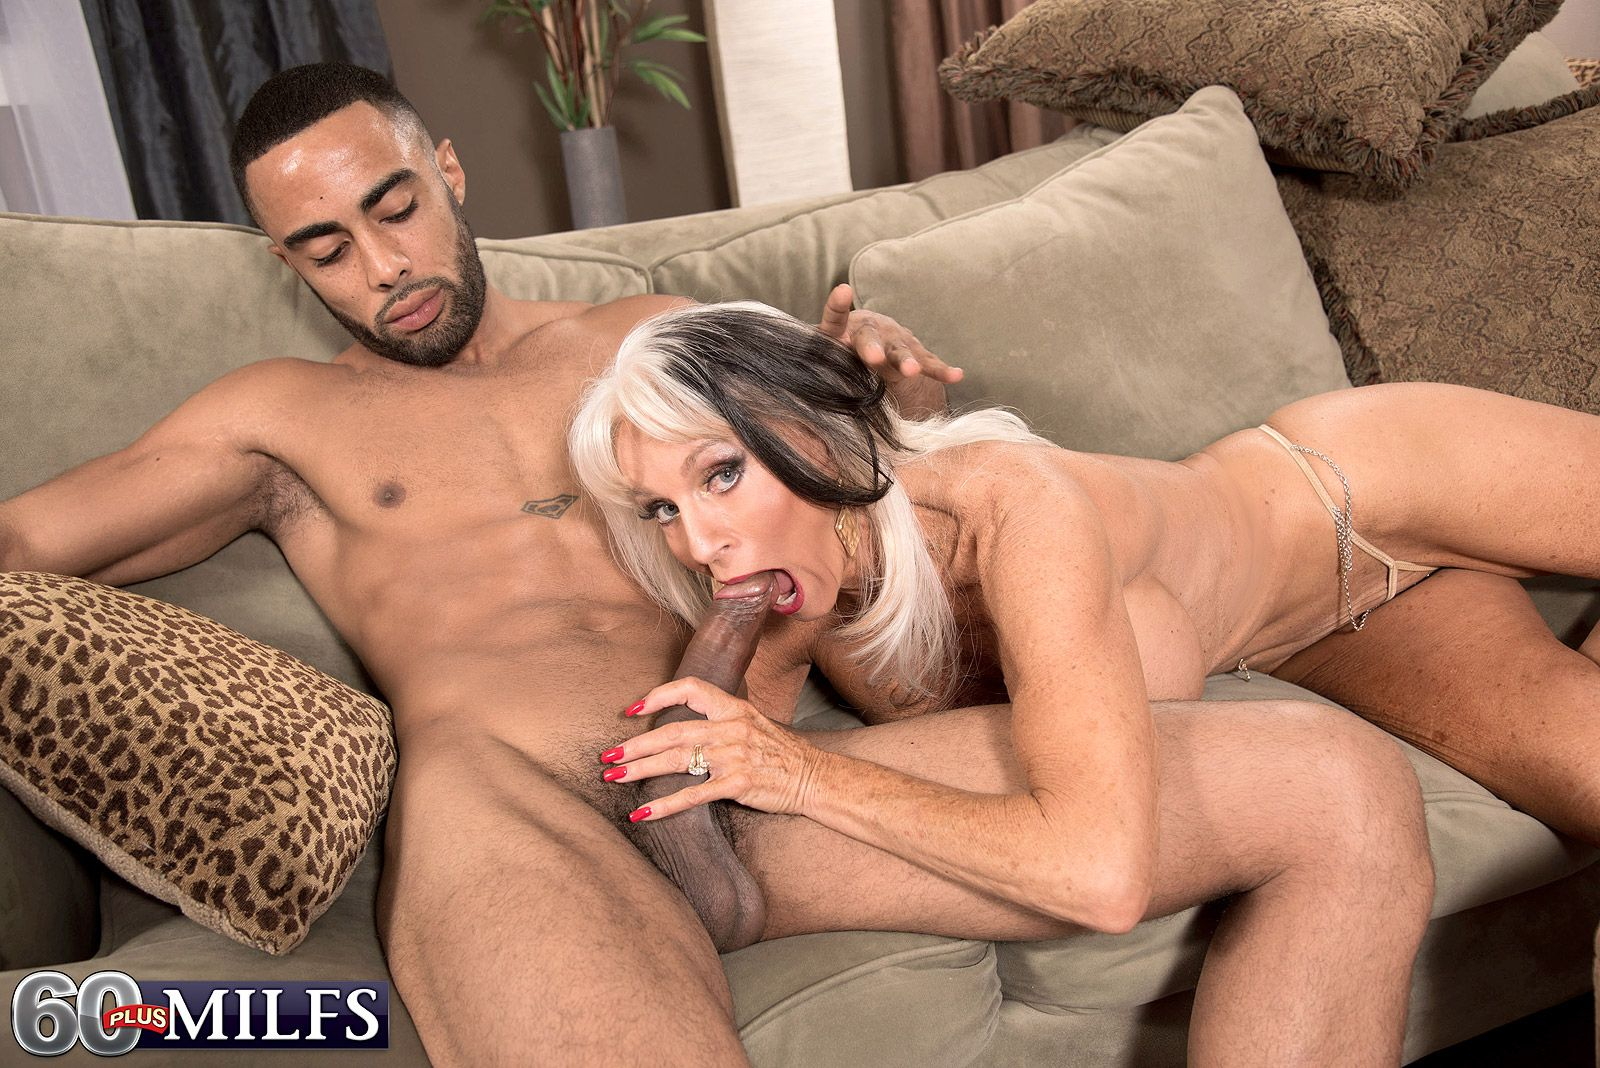 chesty older lady sally d'angelo giving titjob and bj in xxx granny